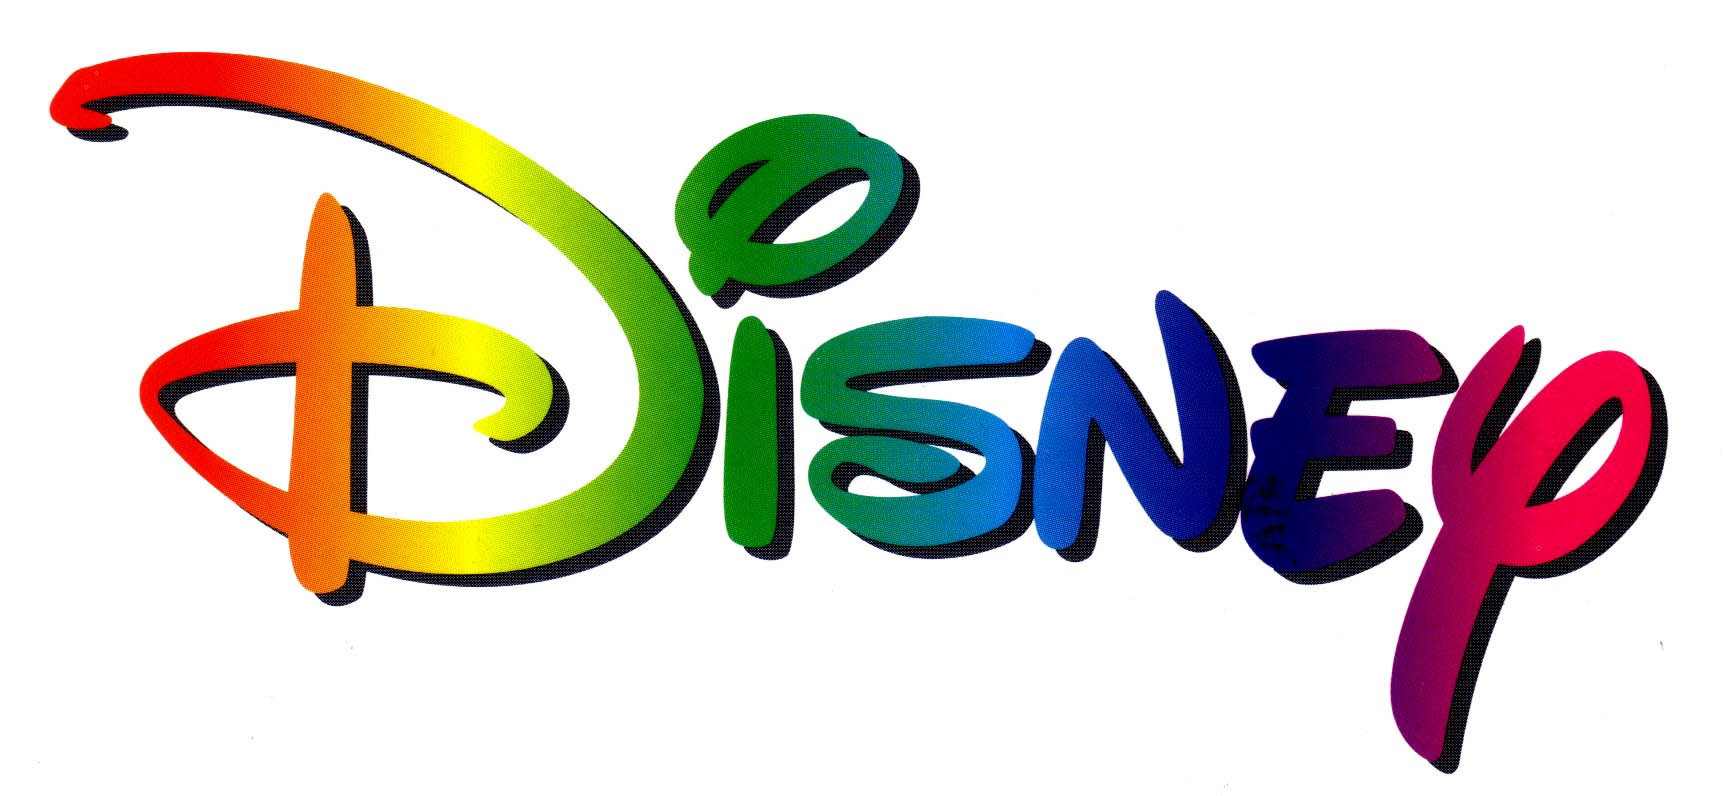 Walt Disney 50 Animated Motion Pictures images Disney HD wallpaper and  background photos - Disney HD PNG